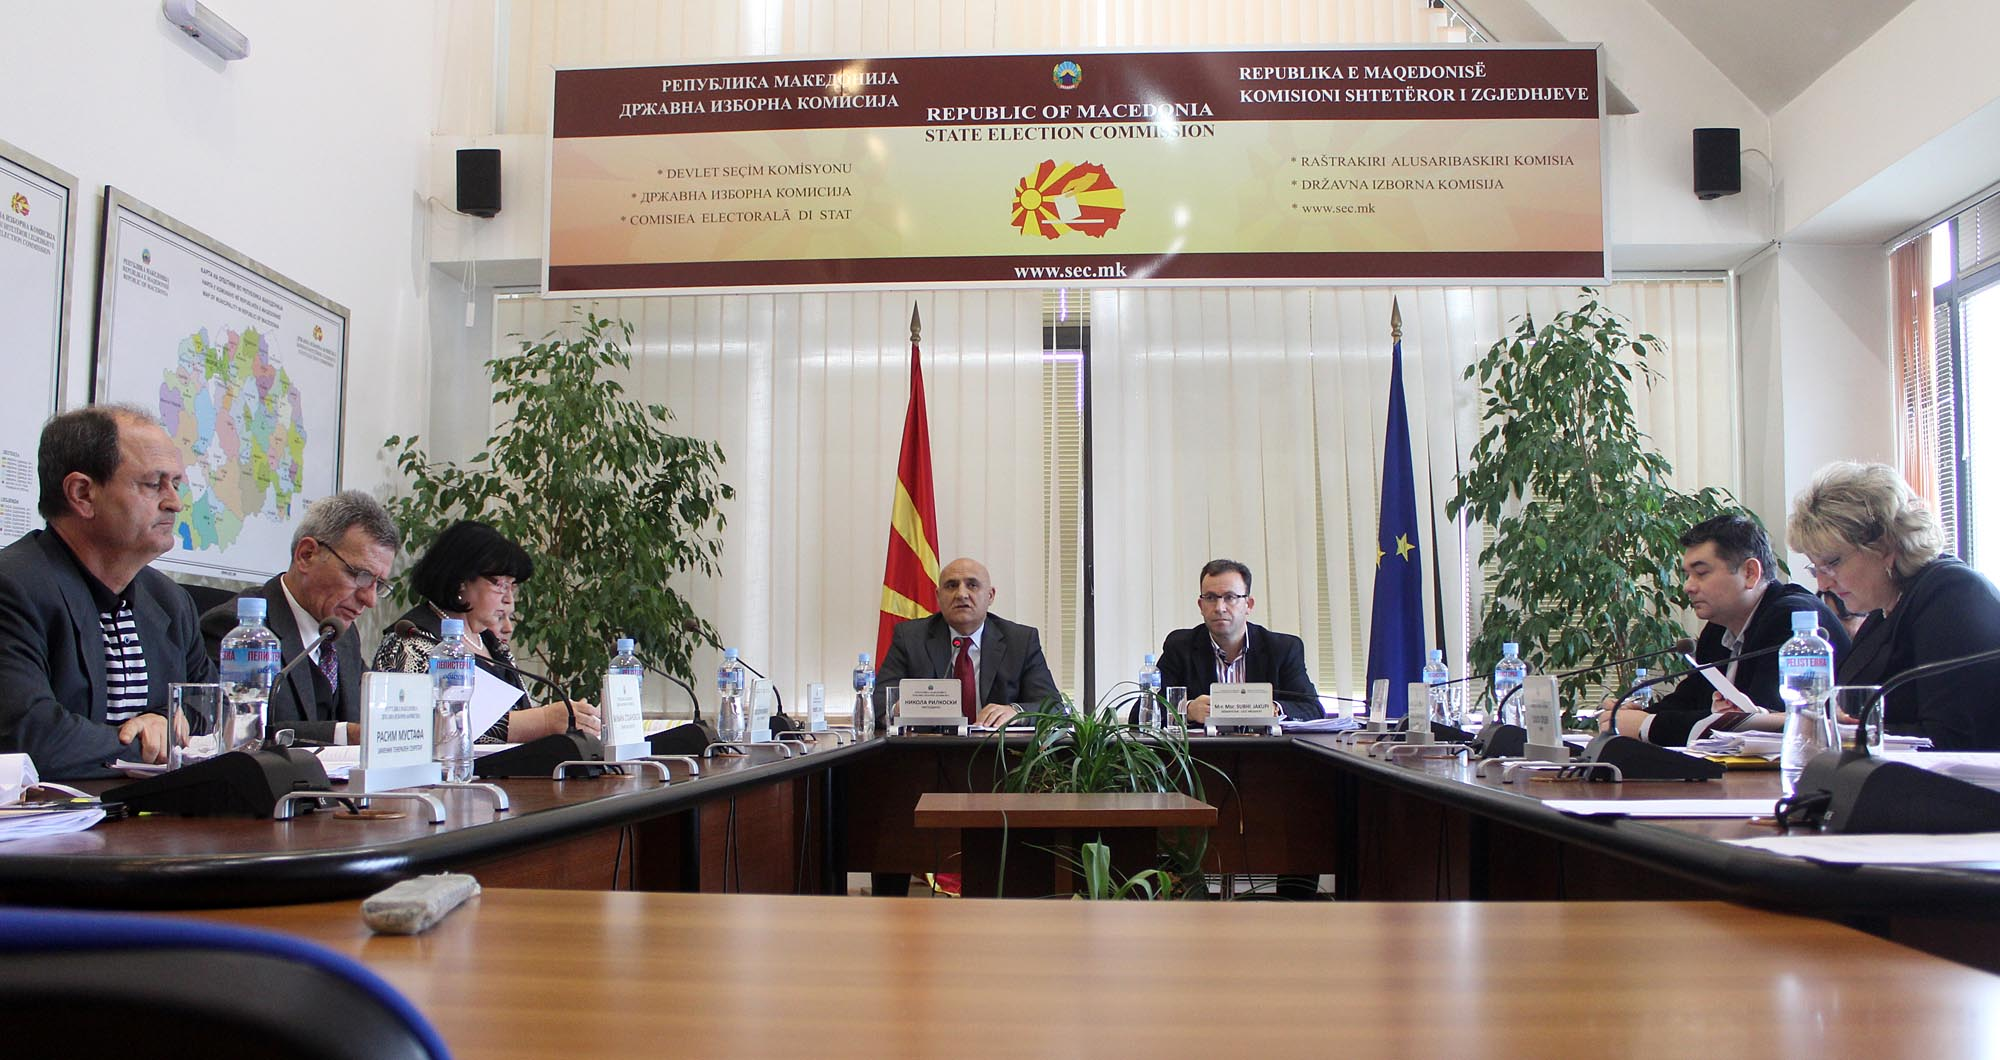 State Election Commission allocates 4 million Euros for the presidential elections